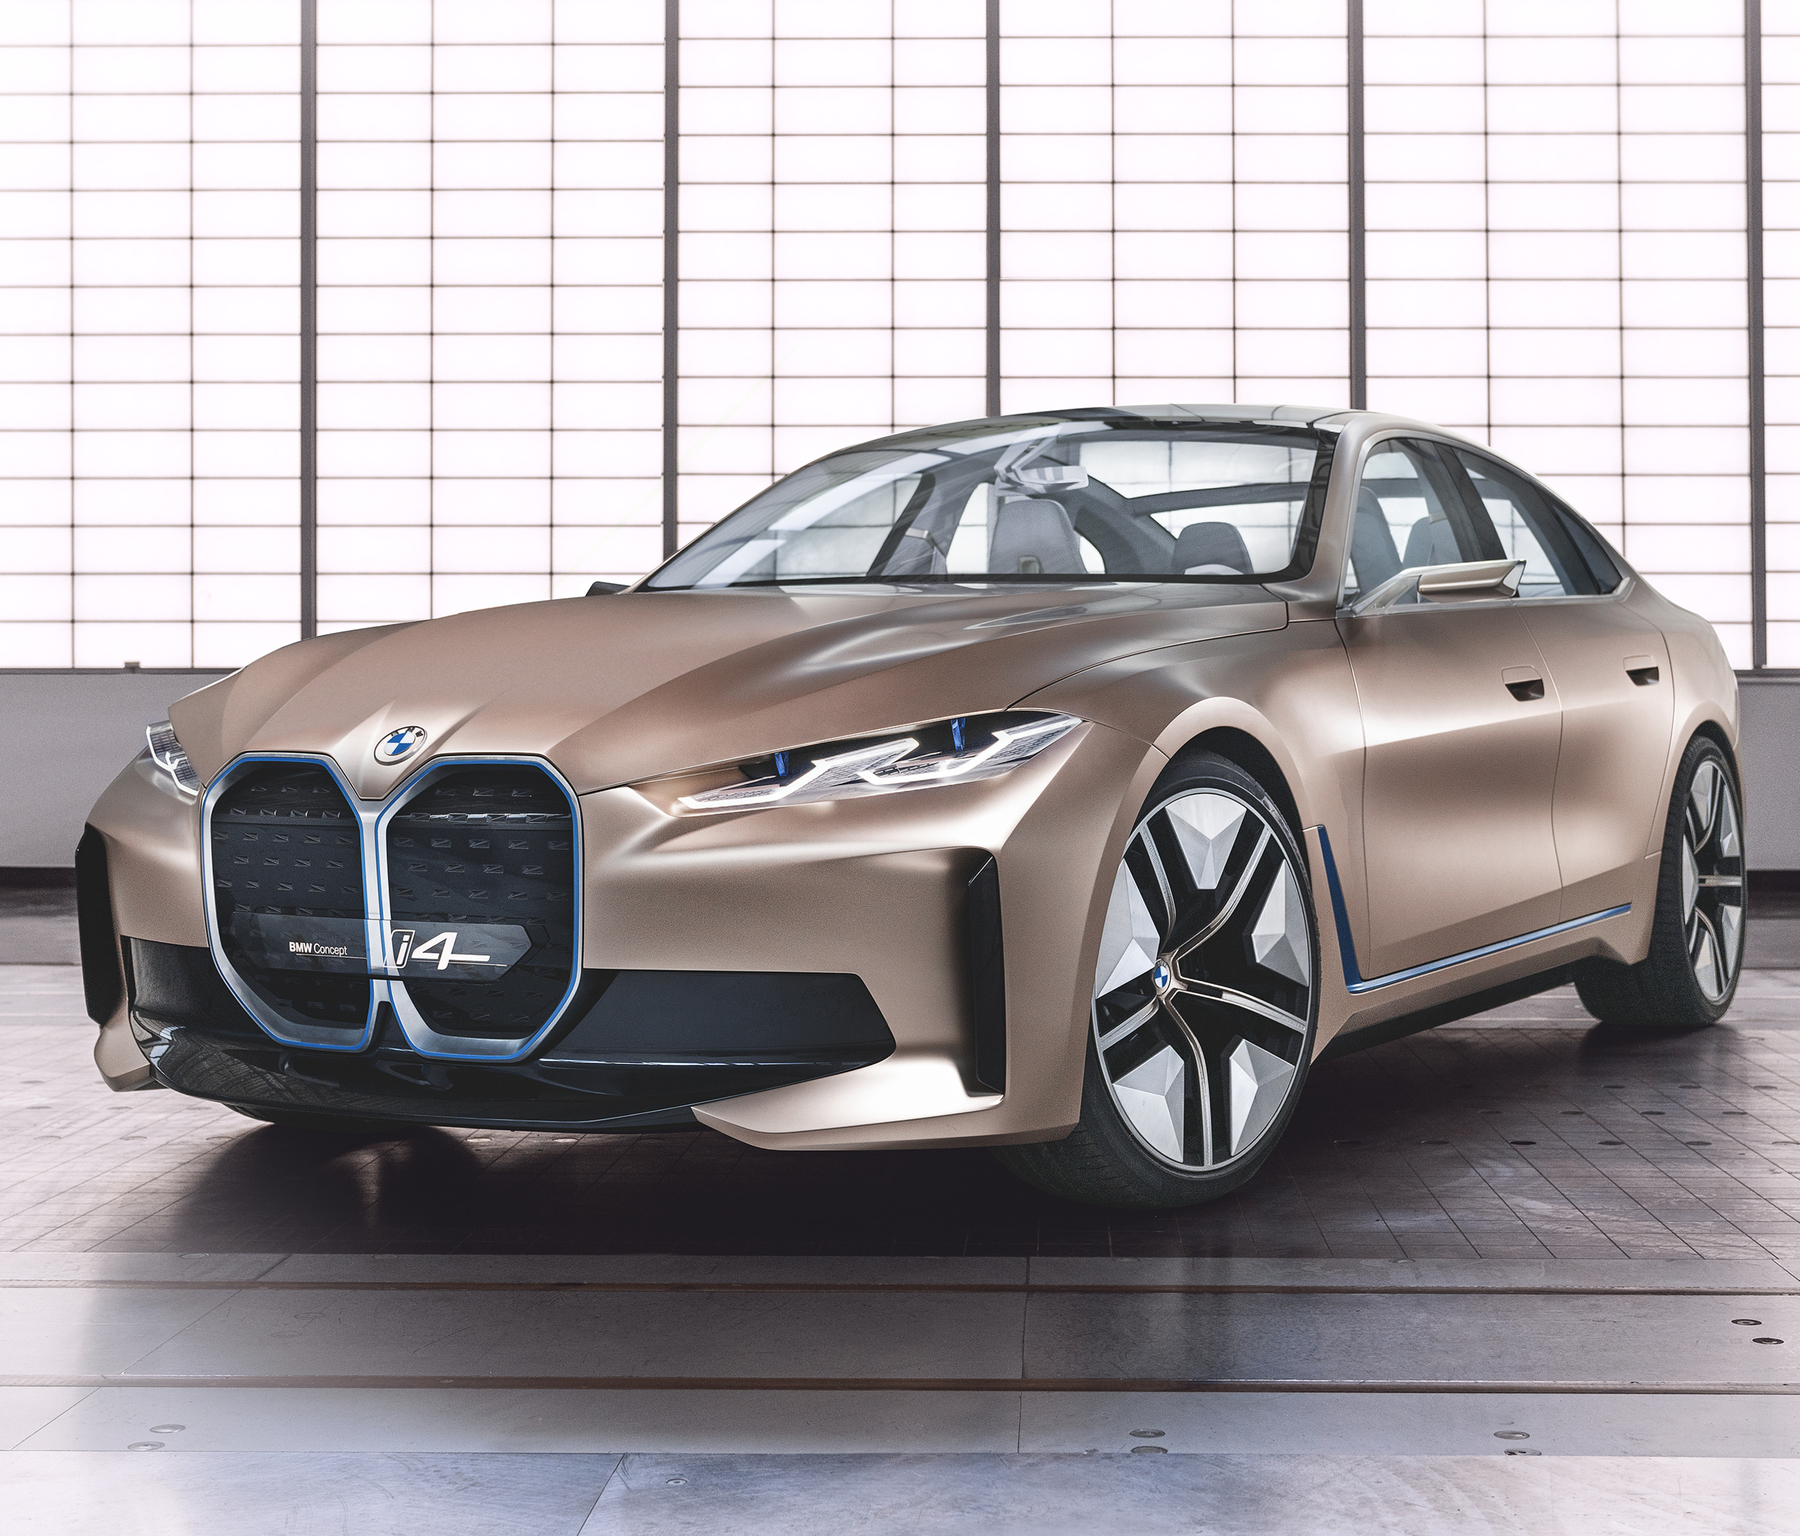 Bmw 4: 2021 BMW I4: Electric 4-Series Previewed With Huge, Ugly